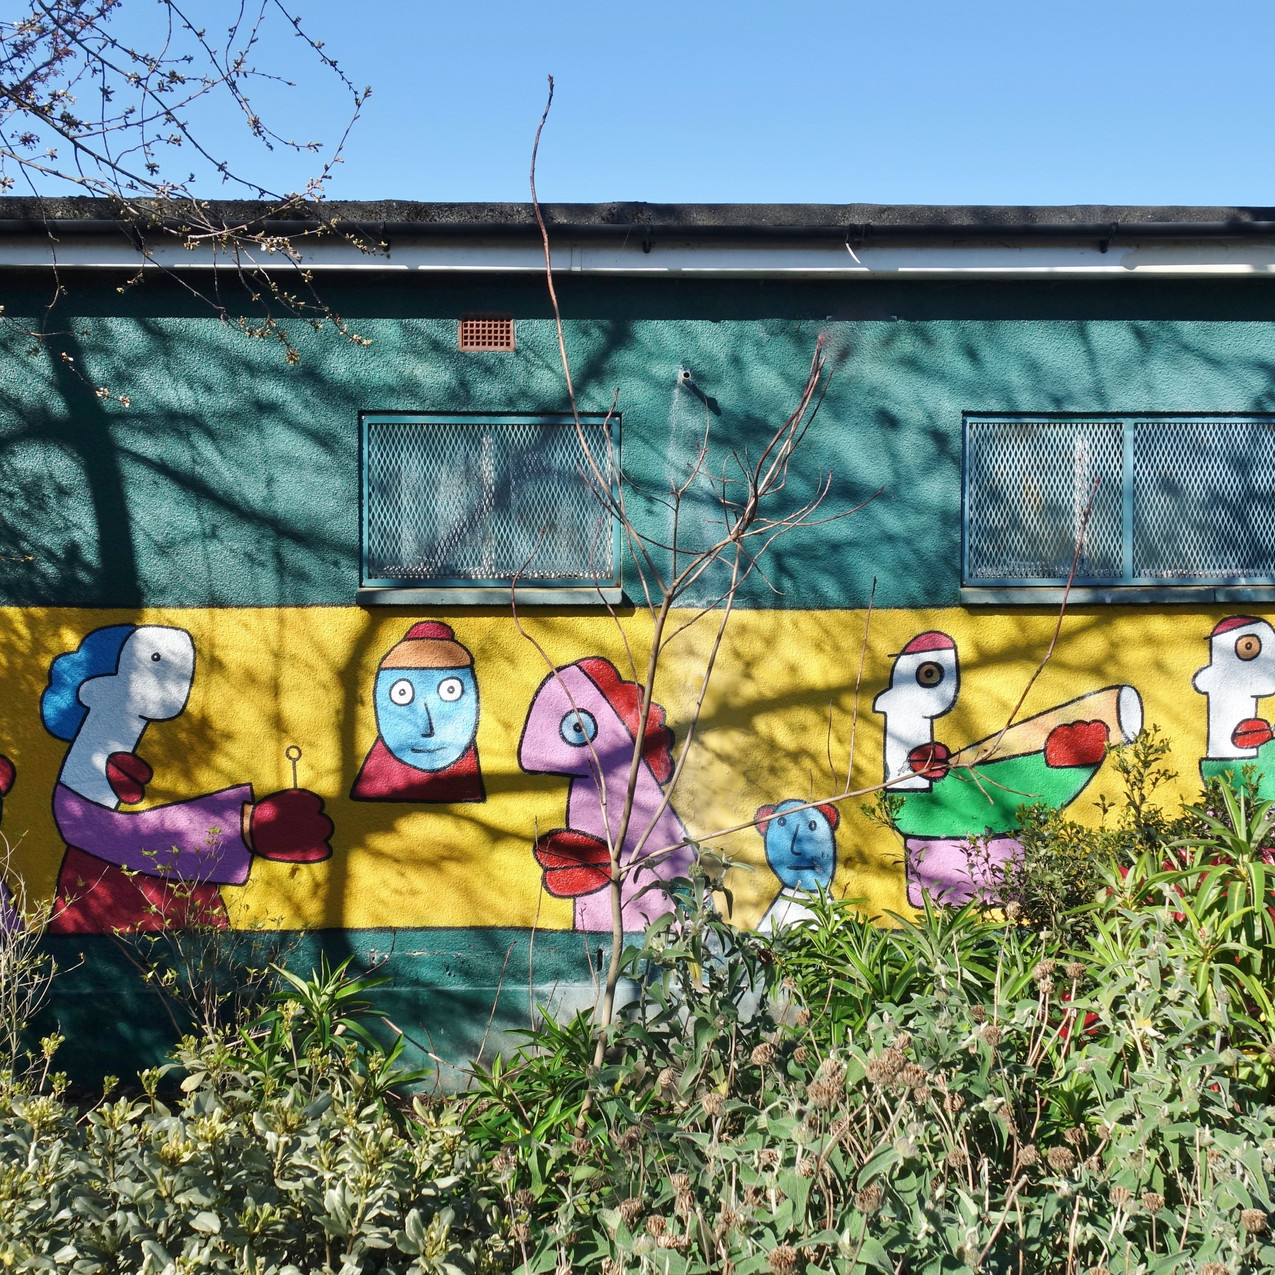 Dulwich Outdoor Gallery